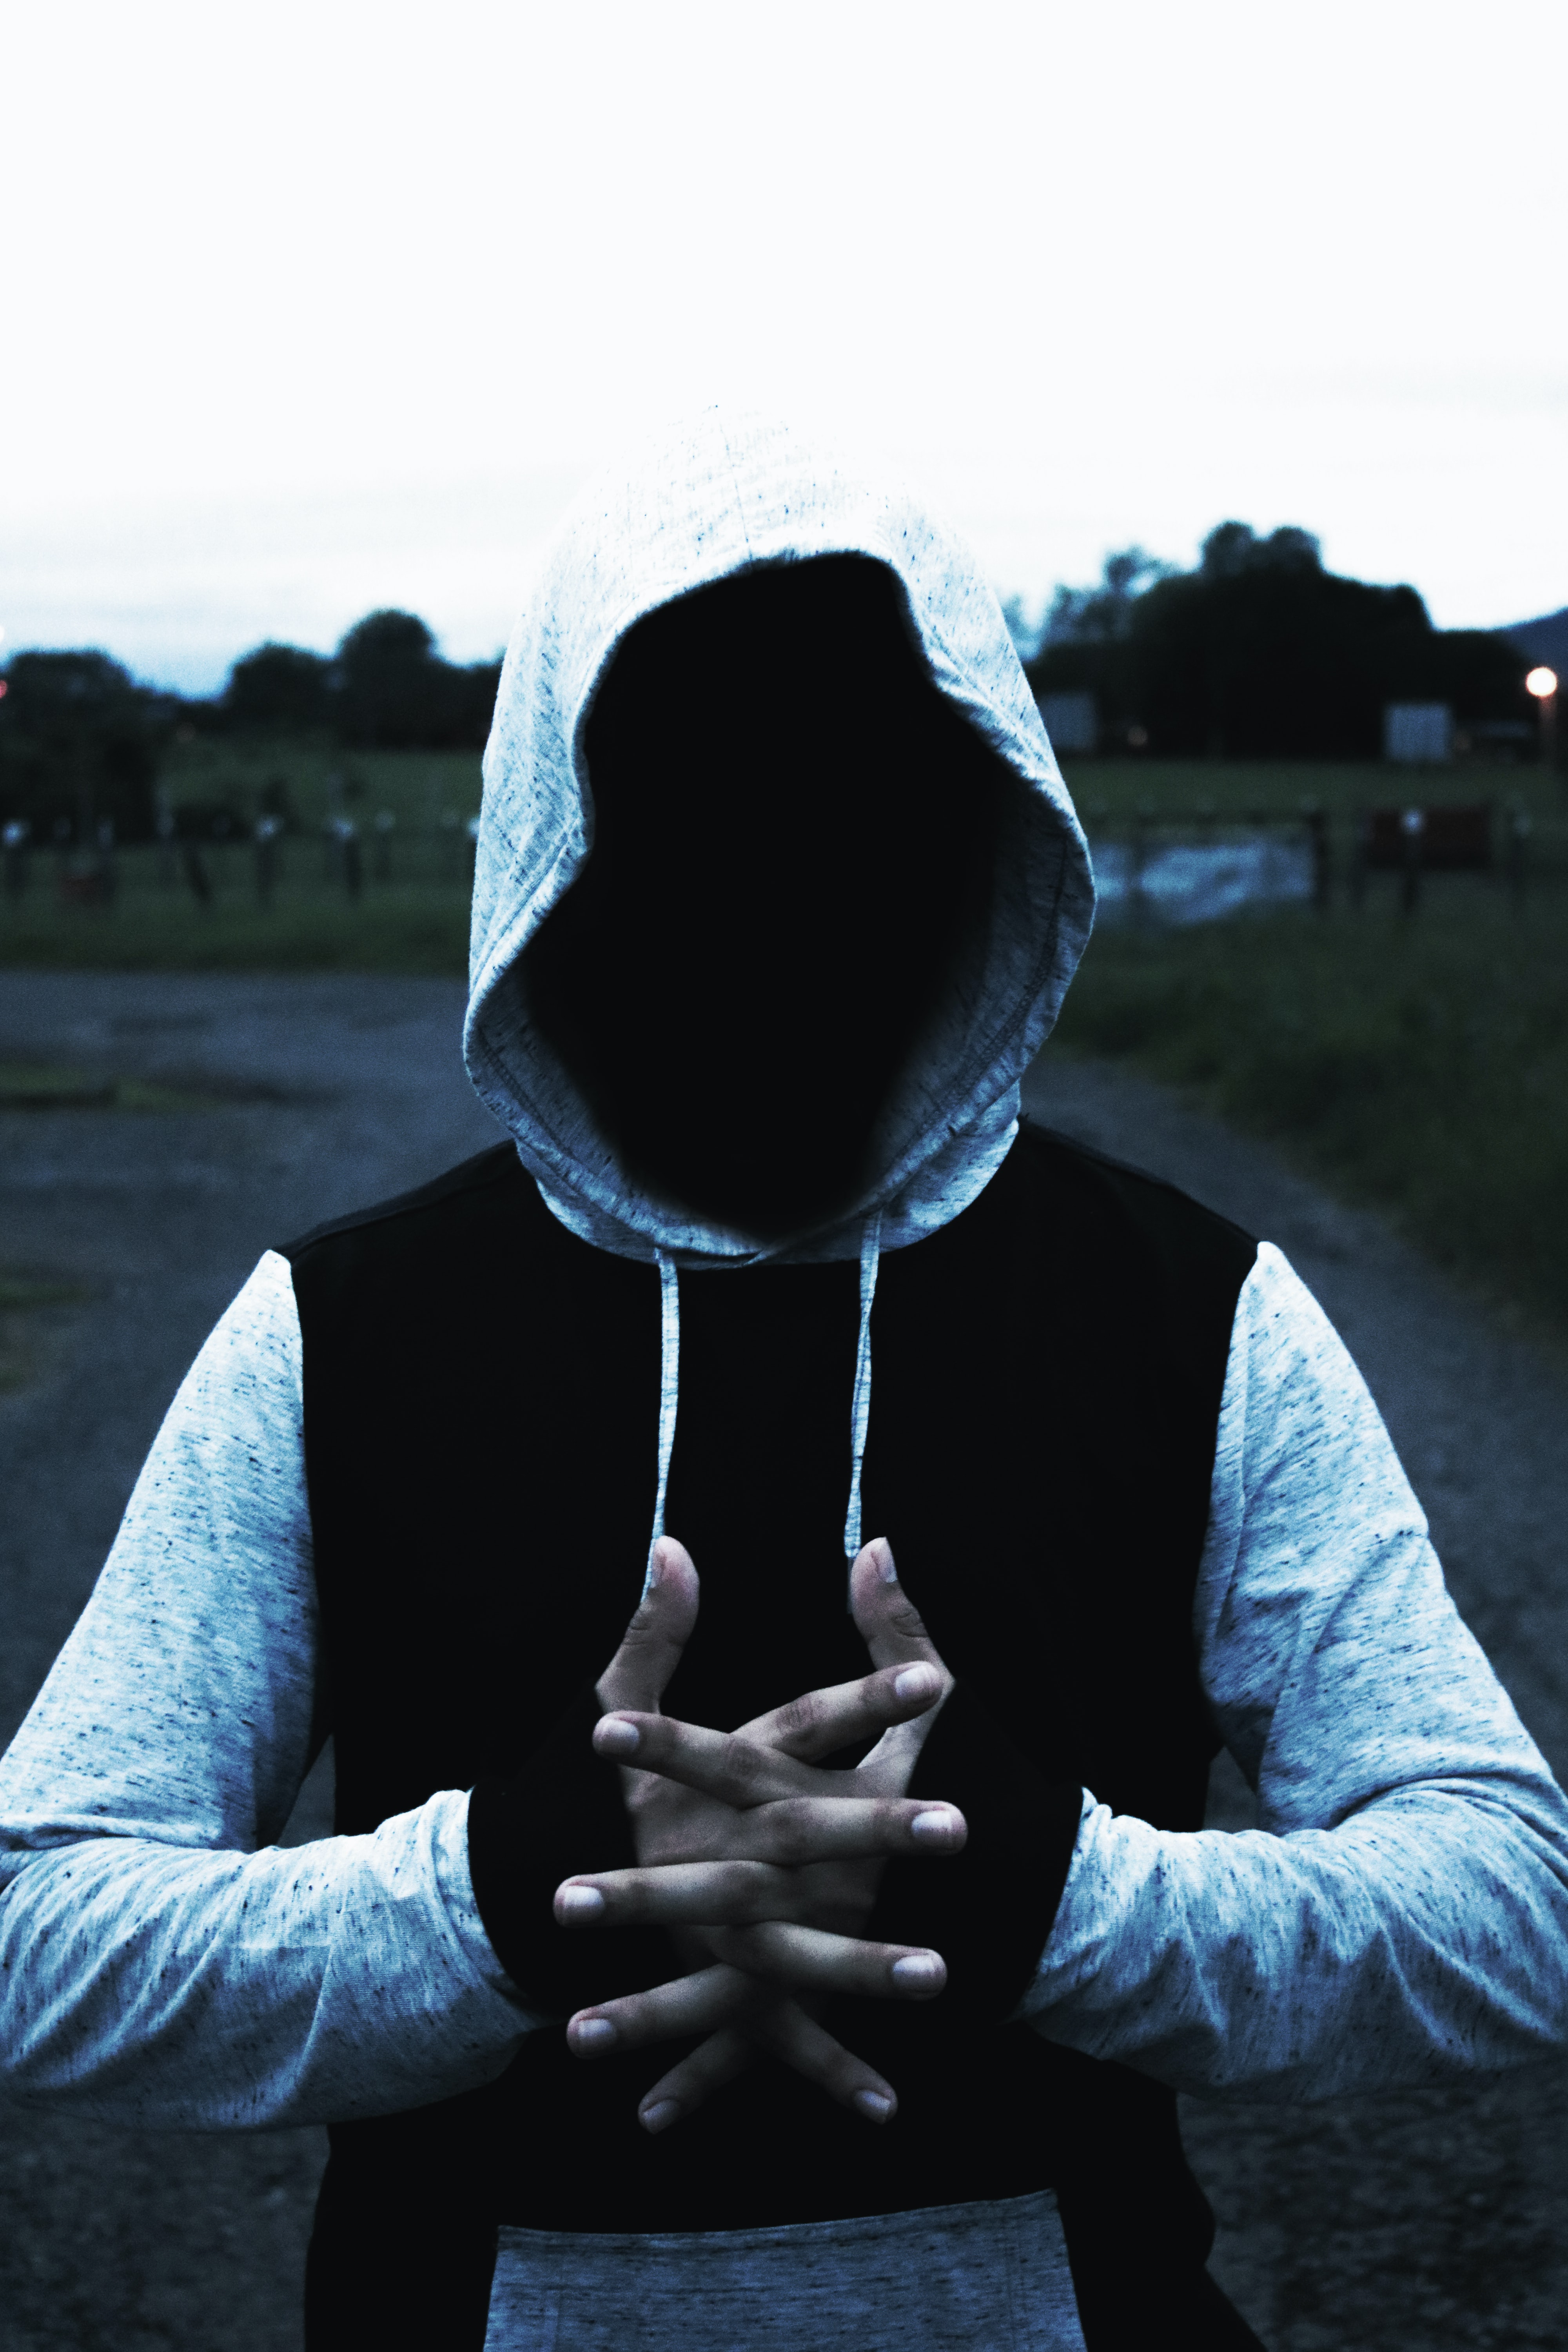 A hooded man stretches his hands.